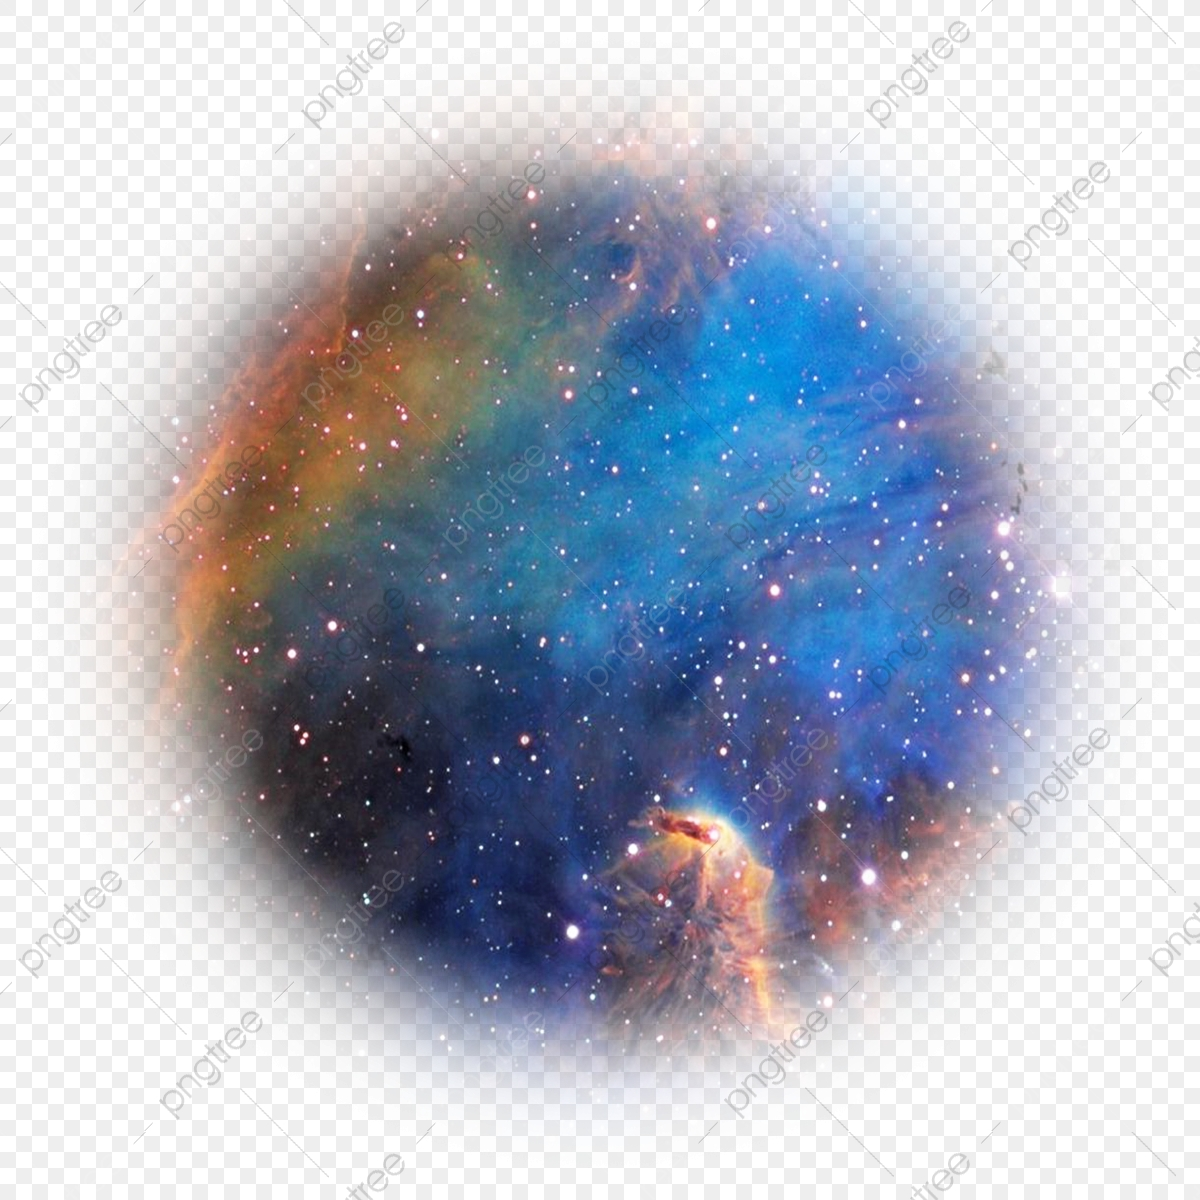 Universe Pictures Png - Universe Point Of Light Effect, Abstract, Shining, Universe PNG ...